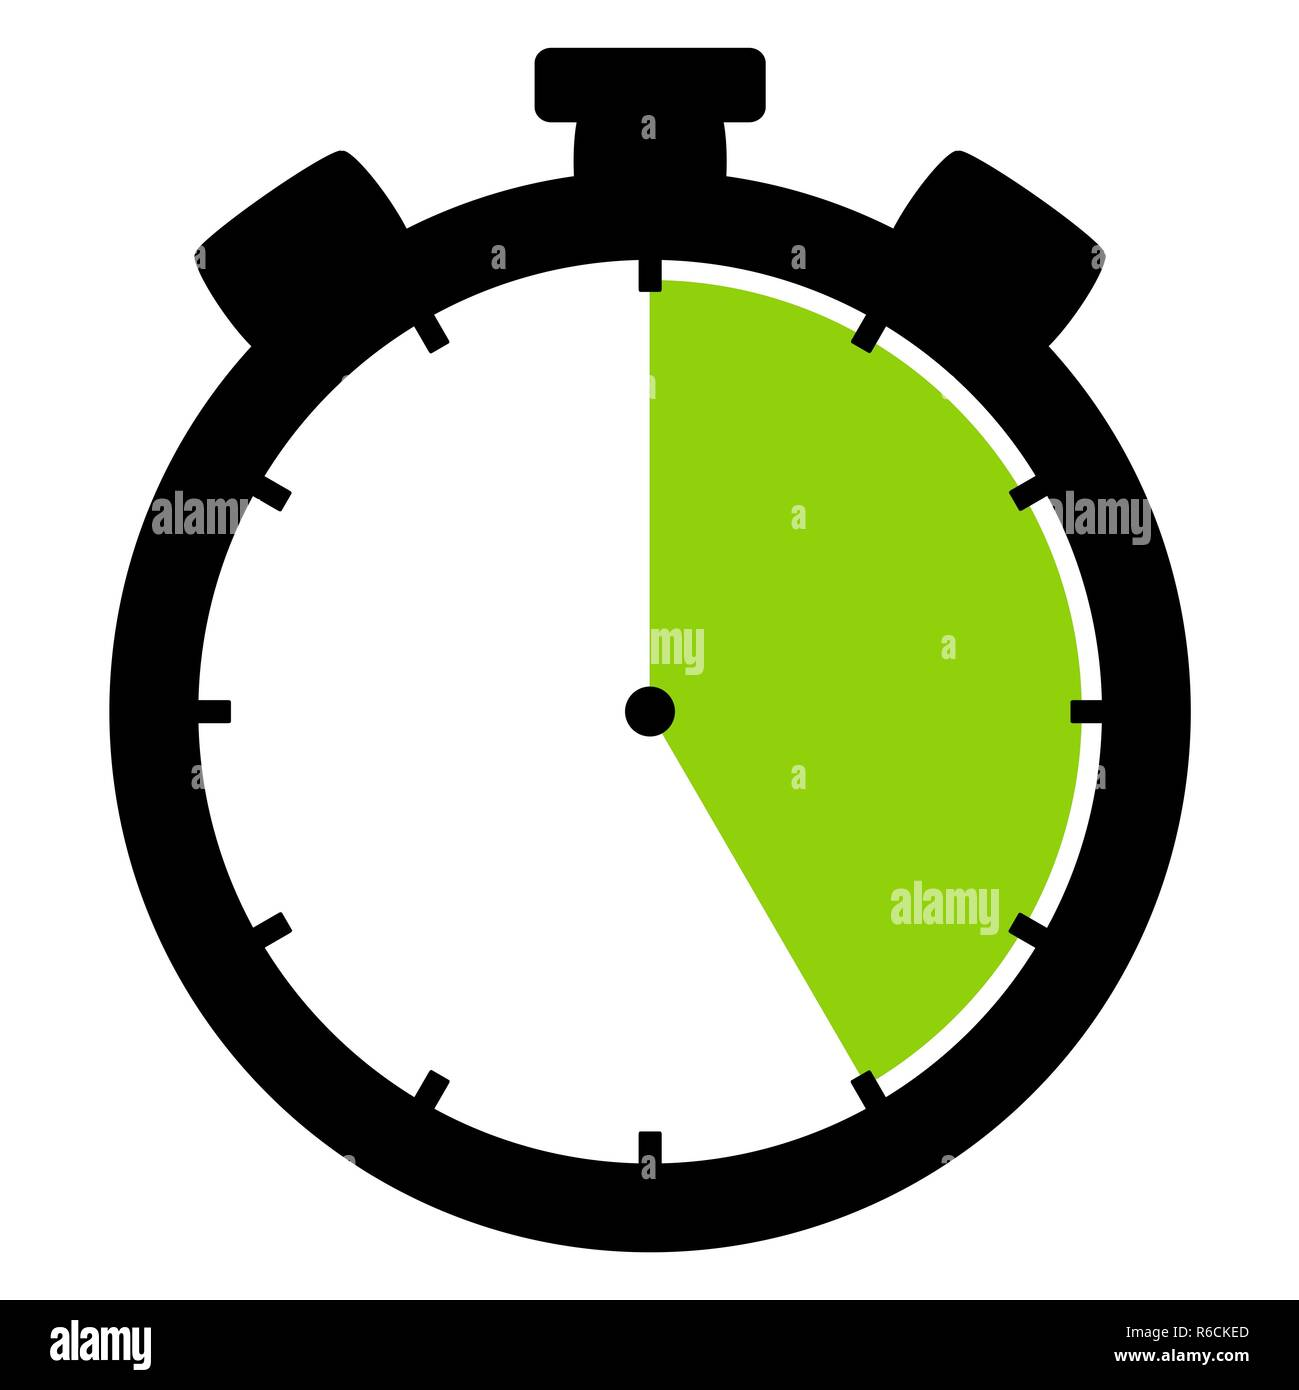 stopwatch icon: 25 minutes 25 seconds or 5 hours - Stock Image